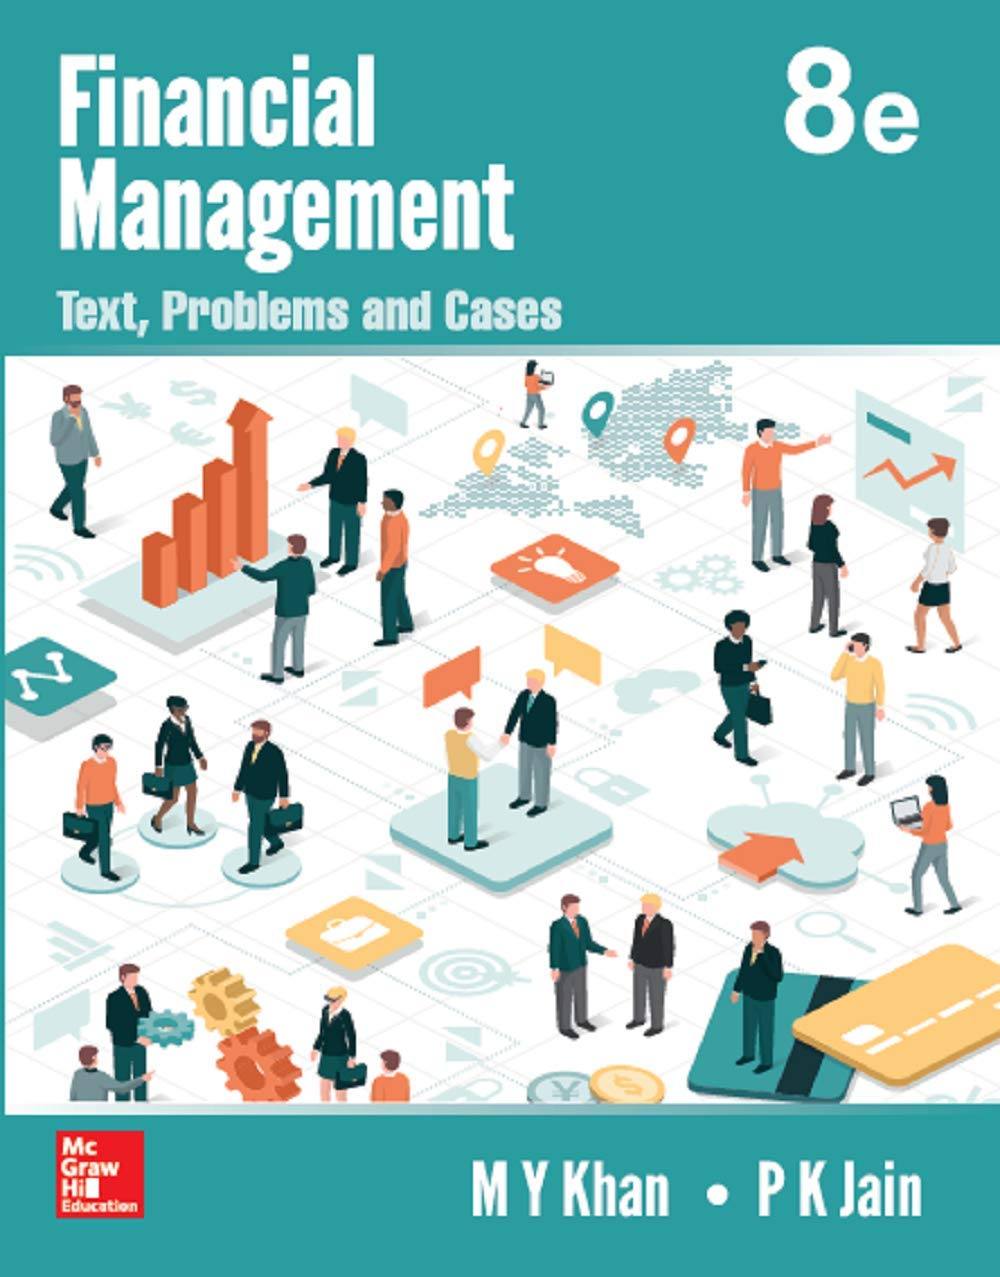 Financial Management: Text, Problems and Cases   8th Edition